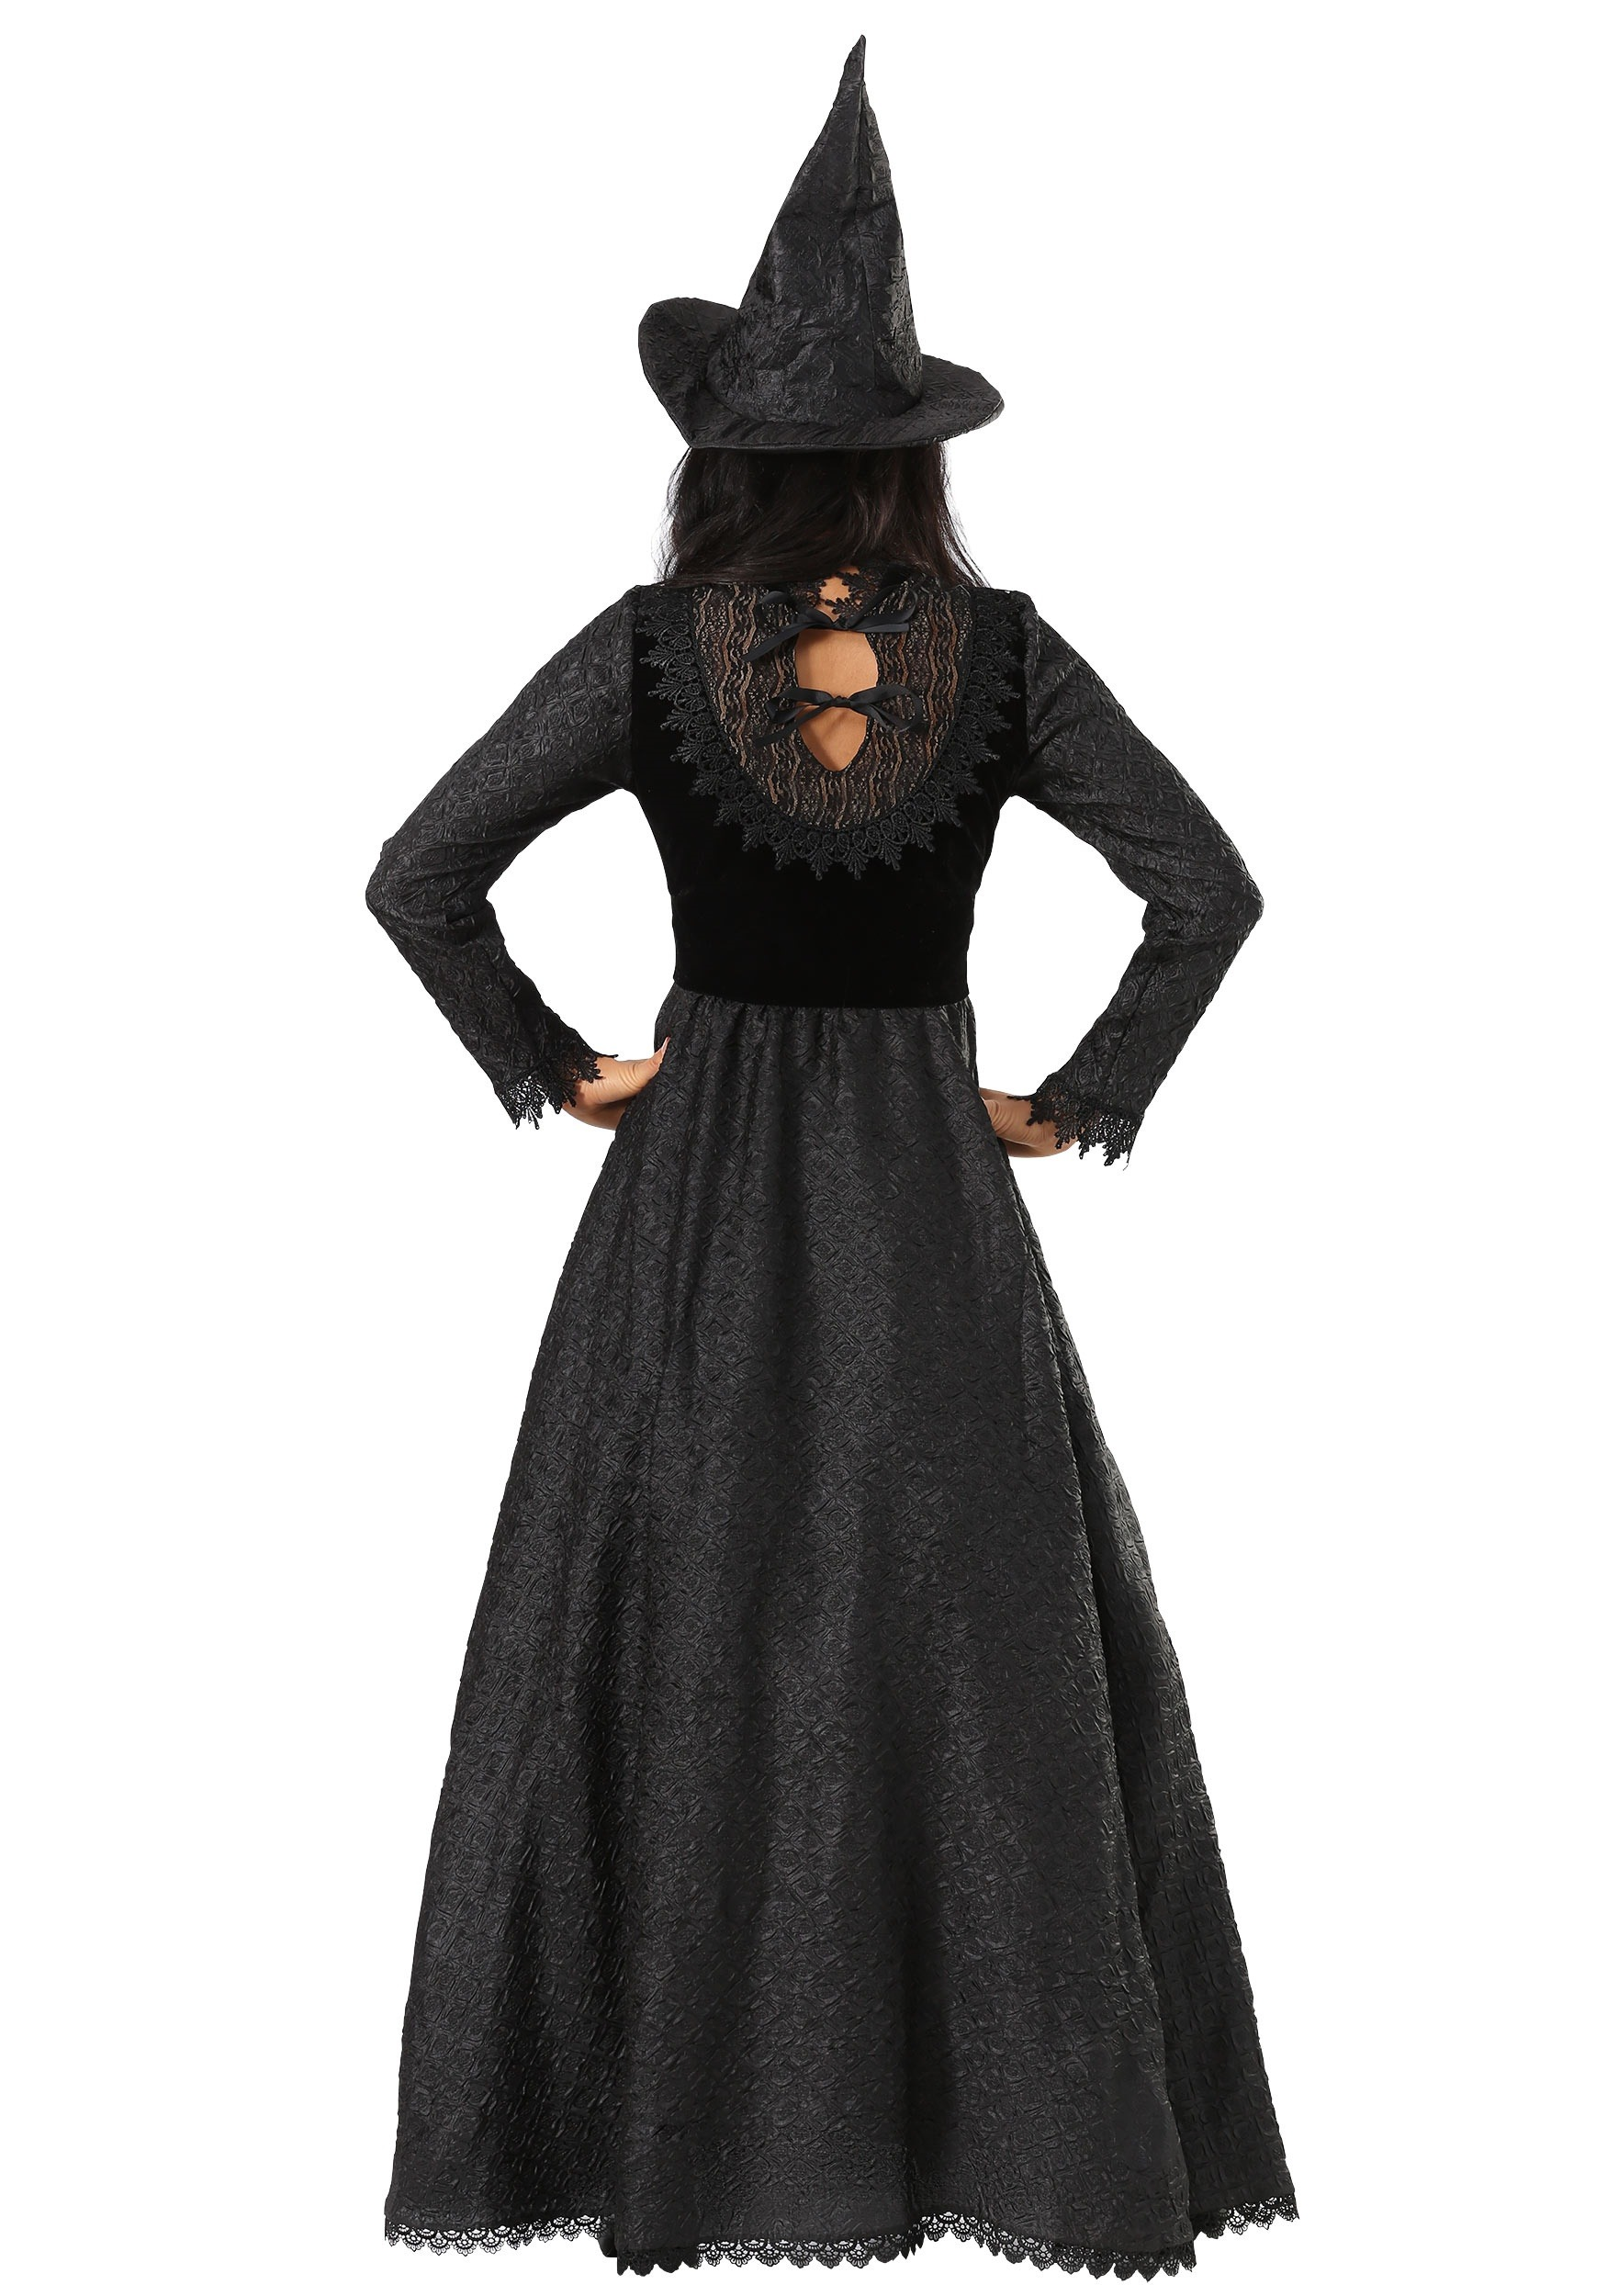 Witches /& Wizards Black Witch Plus Sized Adult Costume